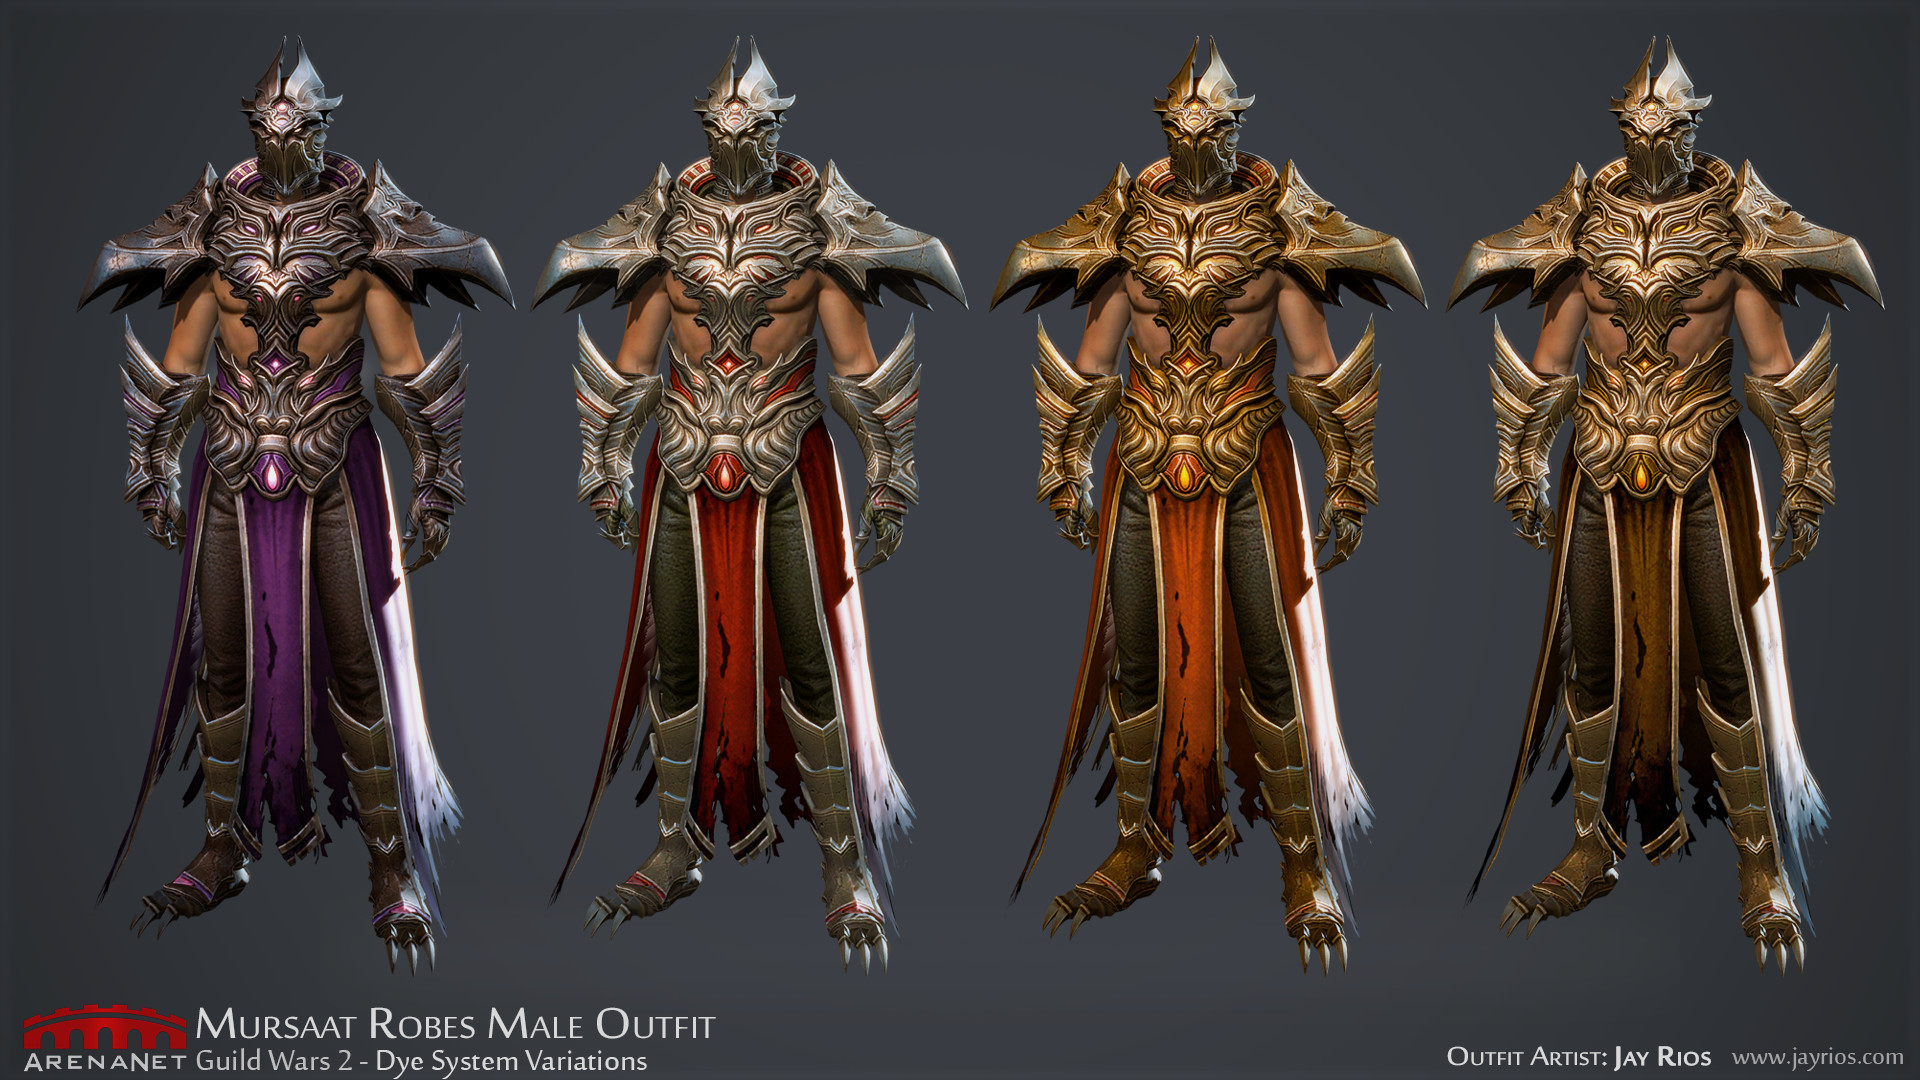 ArtStation - Mursaat Robes Outfit Male, Jay Rios